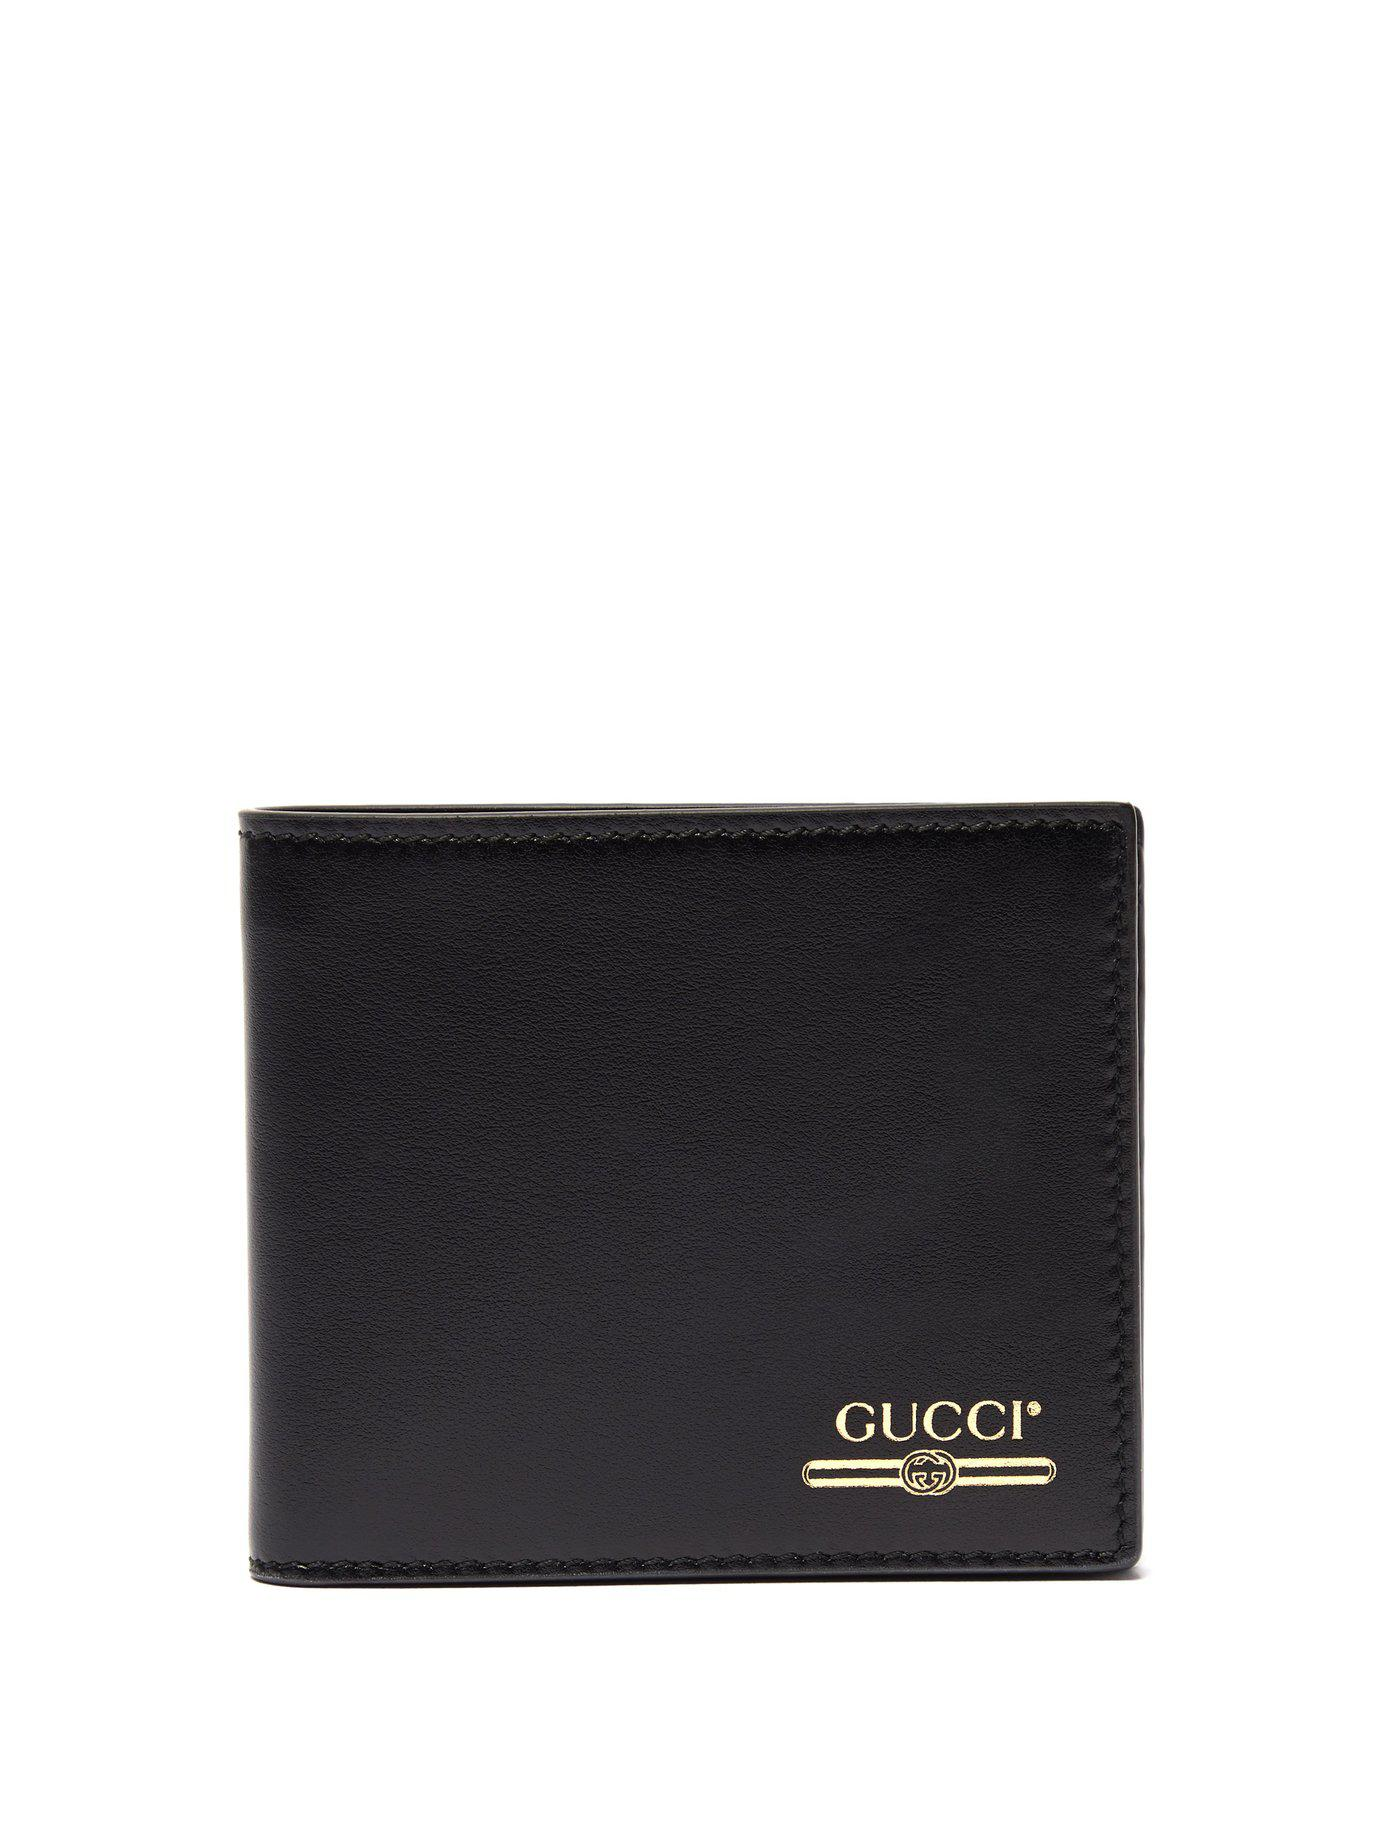 0a3c91580a29 Gucci - Black Debossed Bi Fold Leather Wallet for Men - Lyst. View  fullscreen